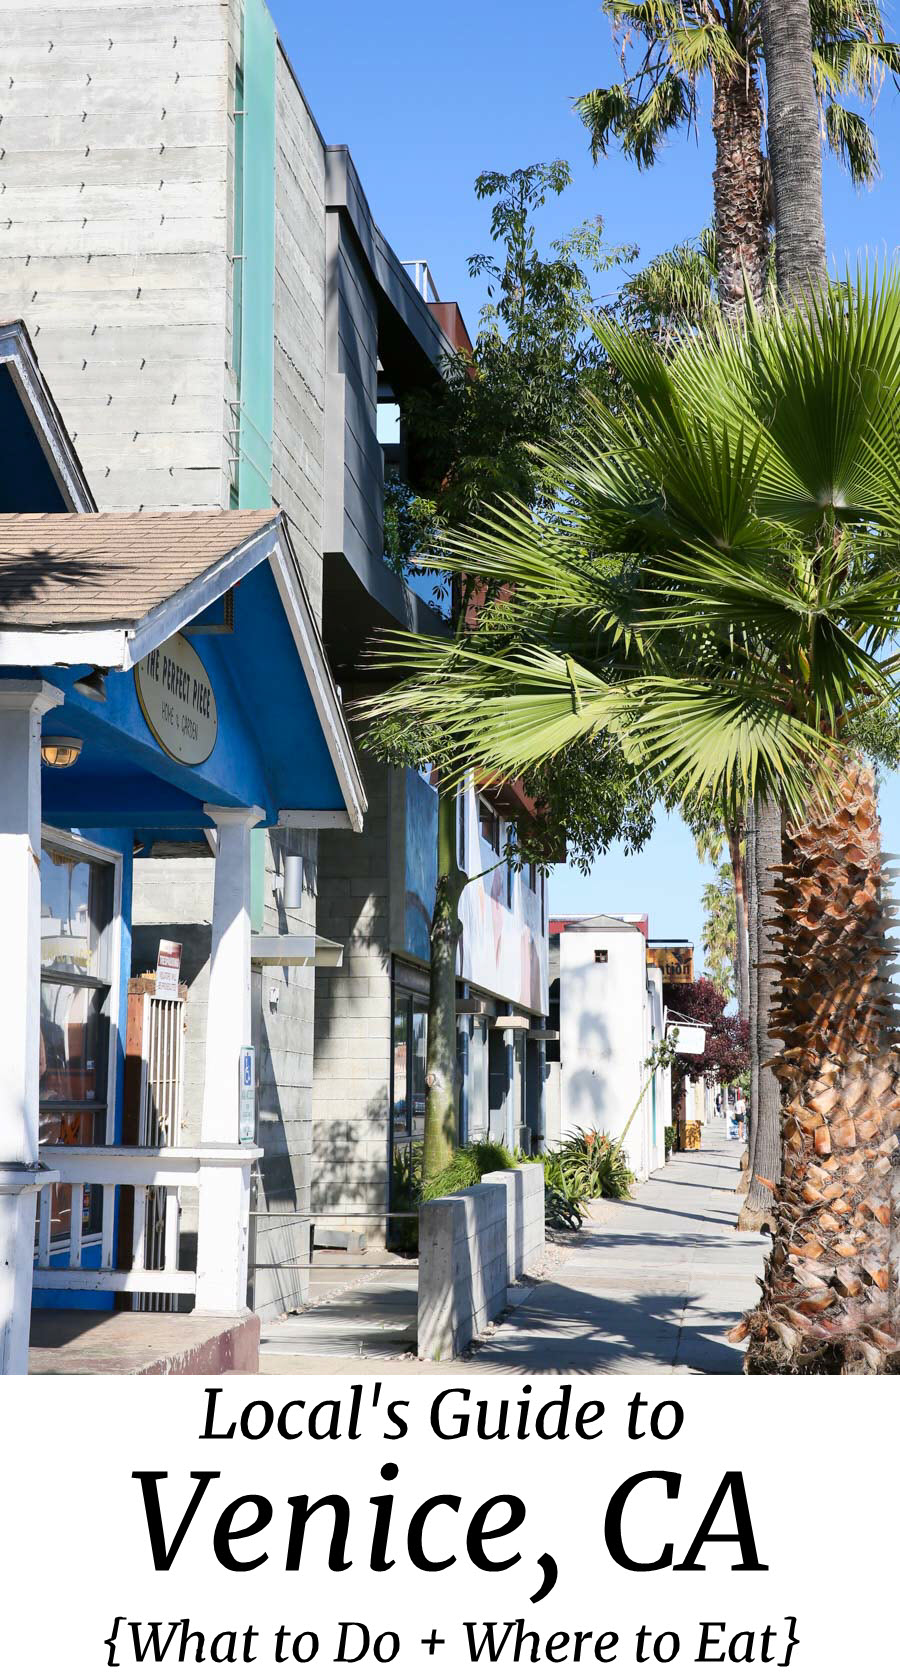 Local's Guide to Venice & Abbot Kinney. What to Do, Where to Eat in Venice. #losangeles #venice #travel #travelguide #lablogger #california #southerncalifornai #socal #lpworldtravel.